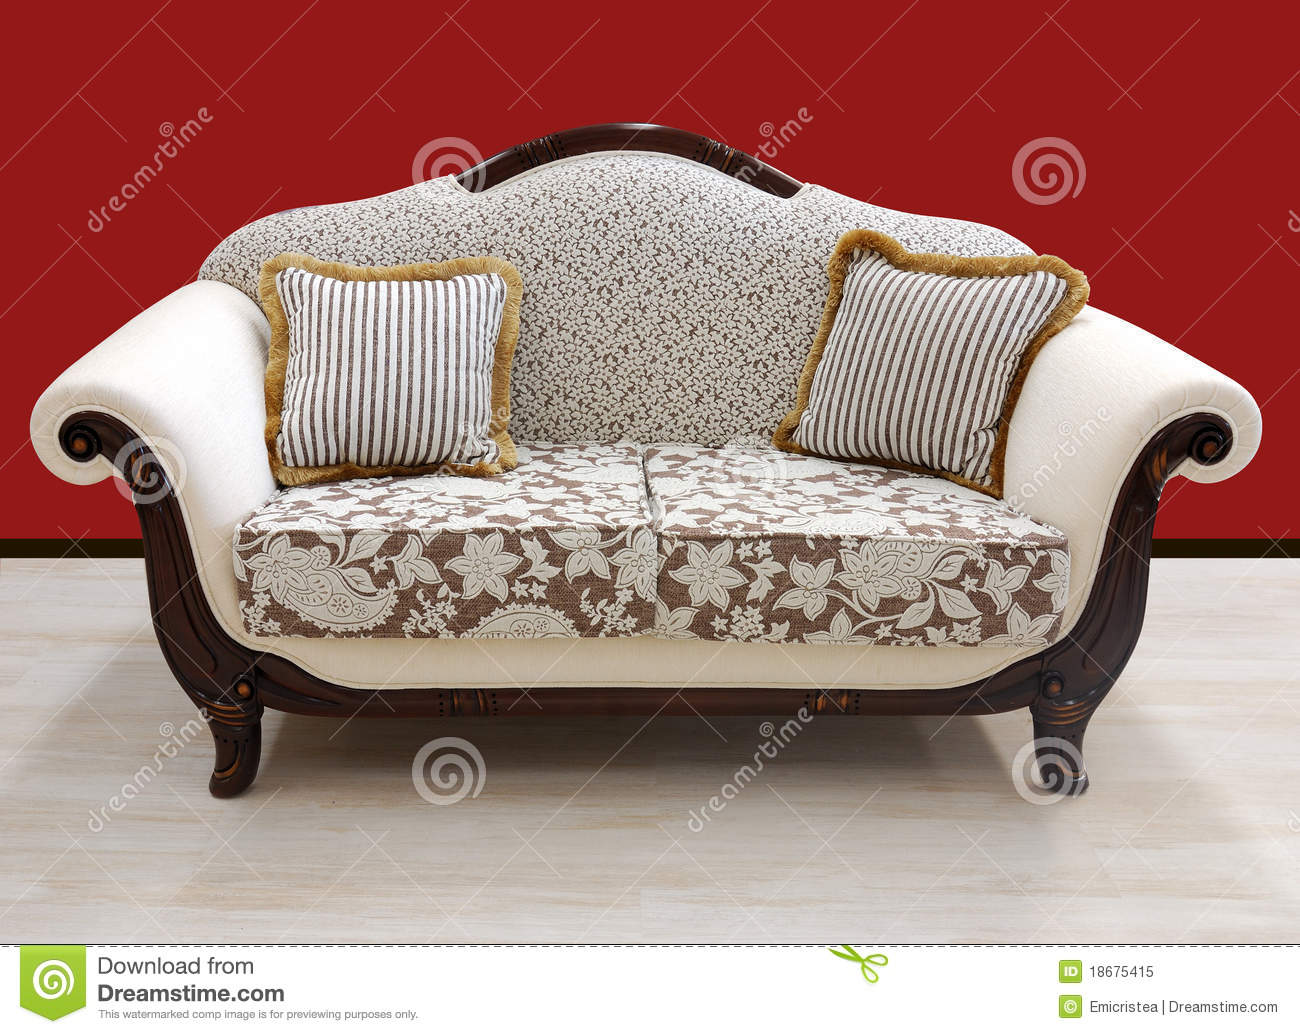 vintage design style sofa stock image image of interior 18675415. Black Bedroom Furniture Sets. Home Design Ideas